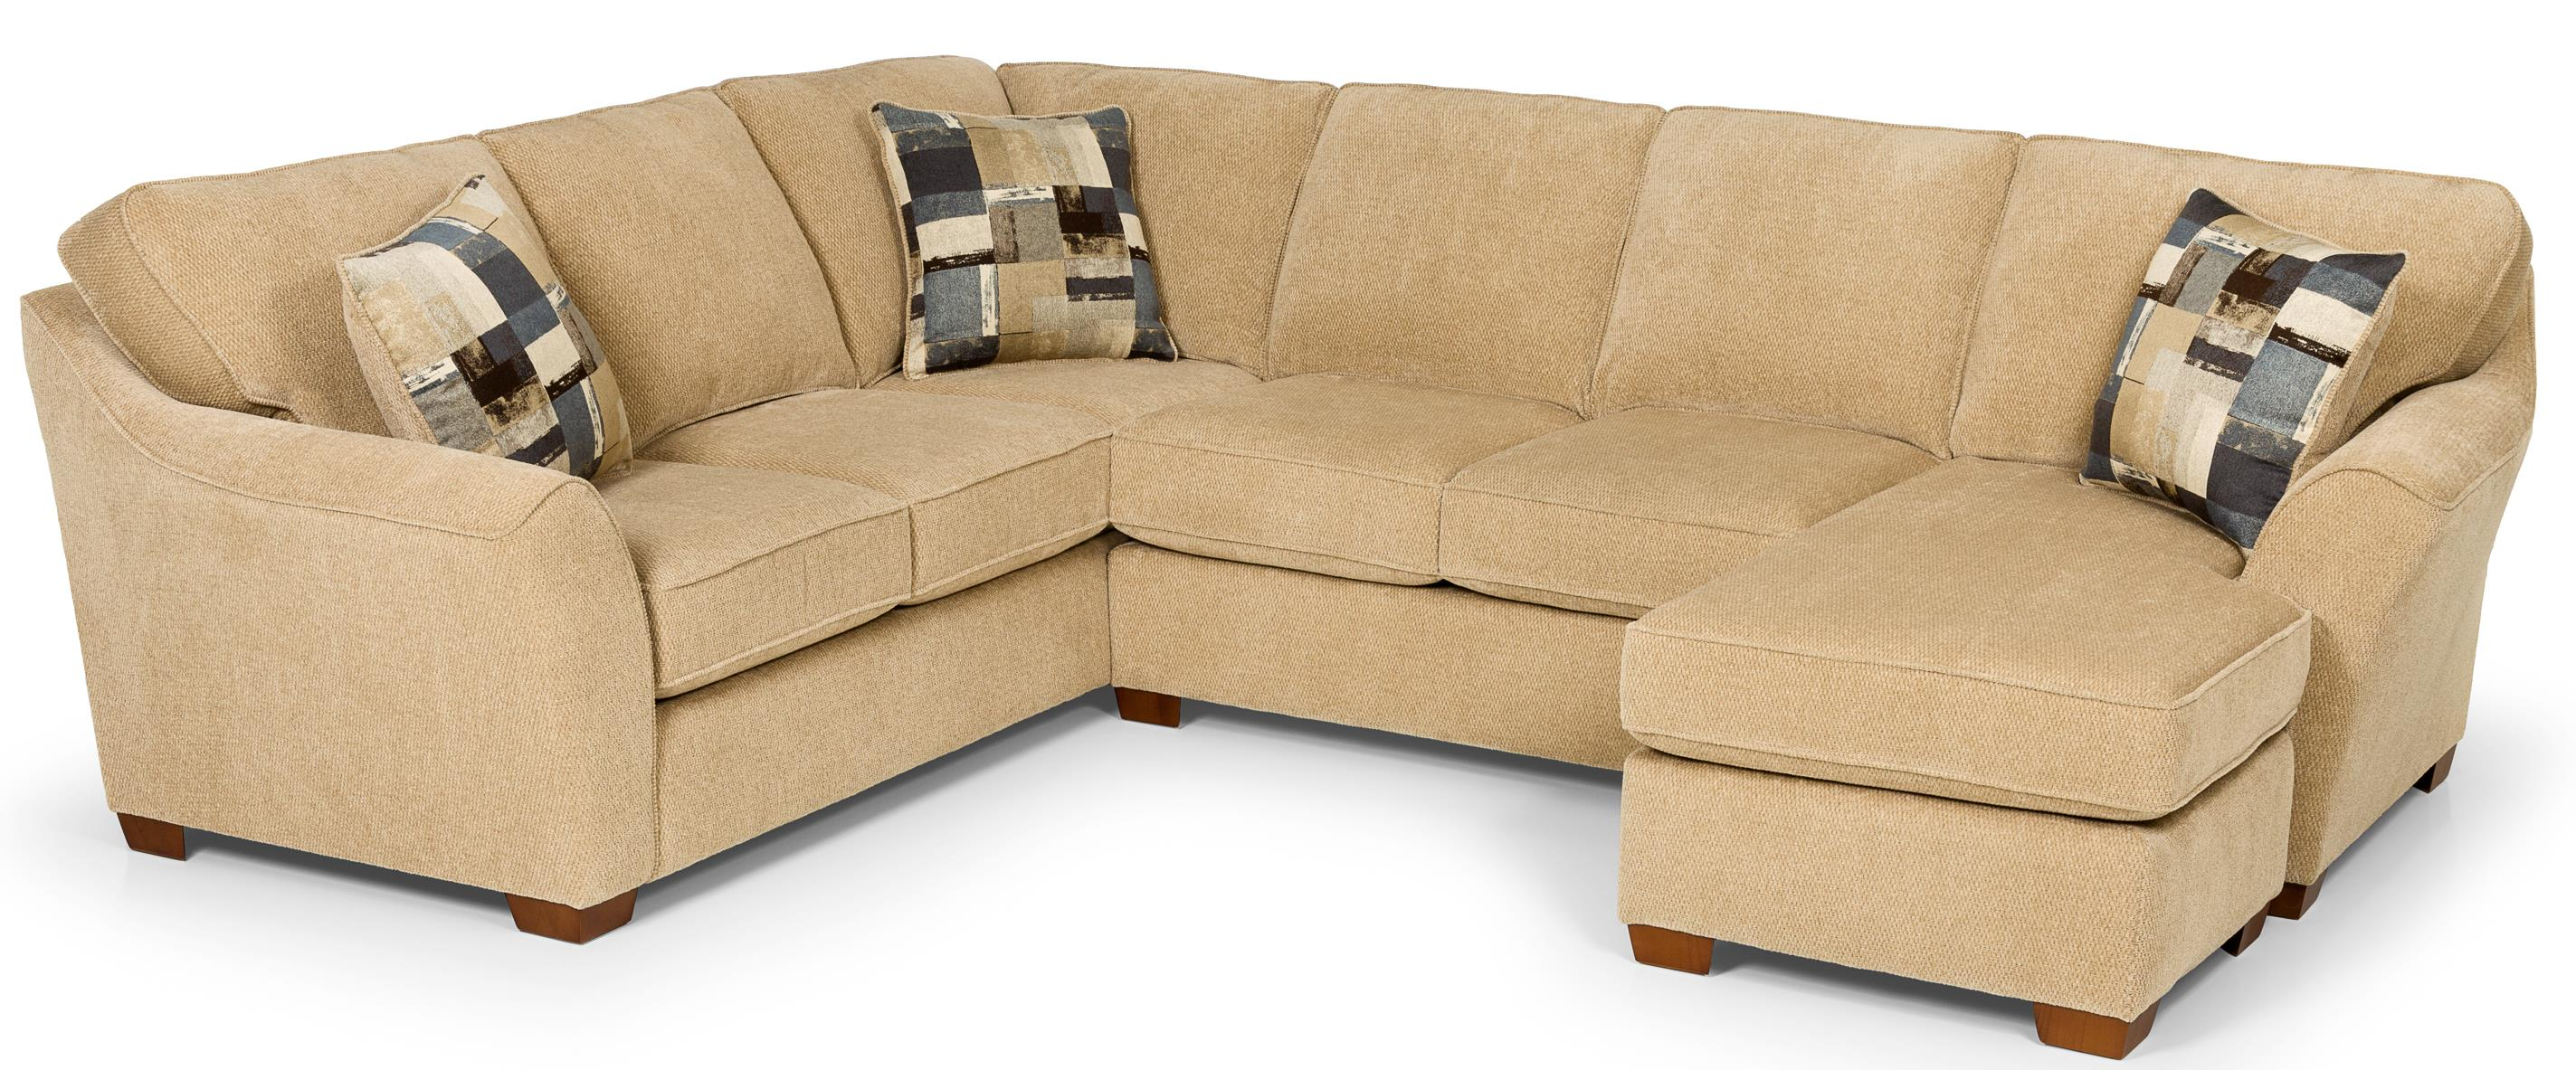 112 L Shaped Sectional by Stanton at Wilson's Furniture